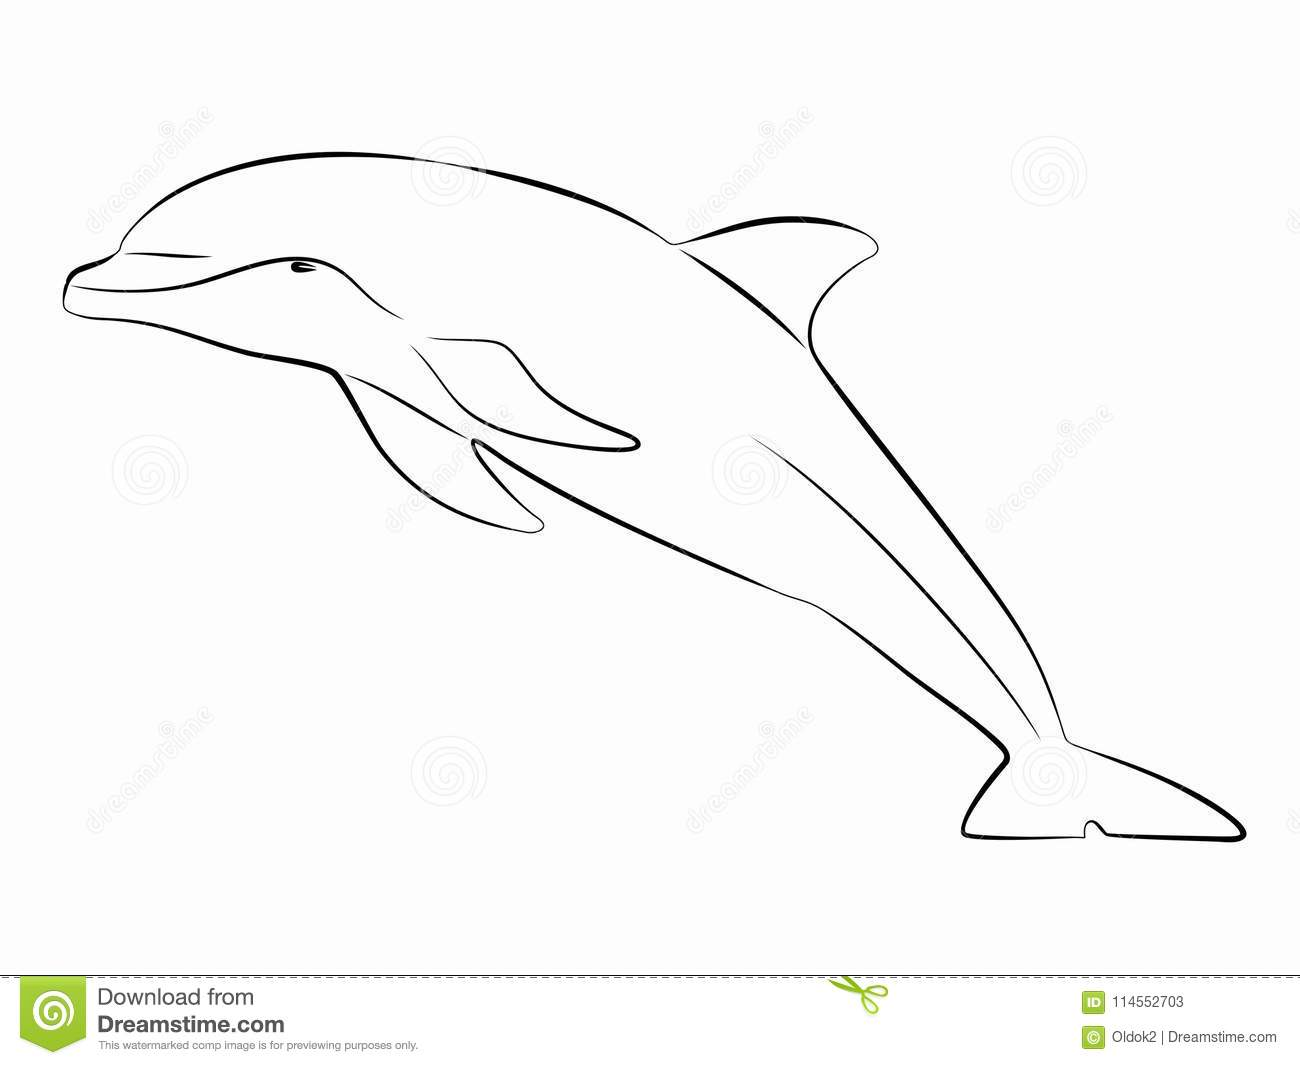 Silhouette Dolphin Vector Draw Stock Vector Illustration of image